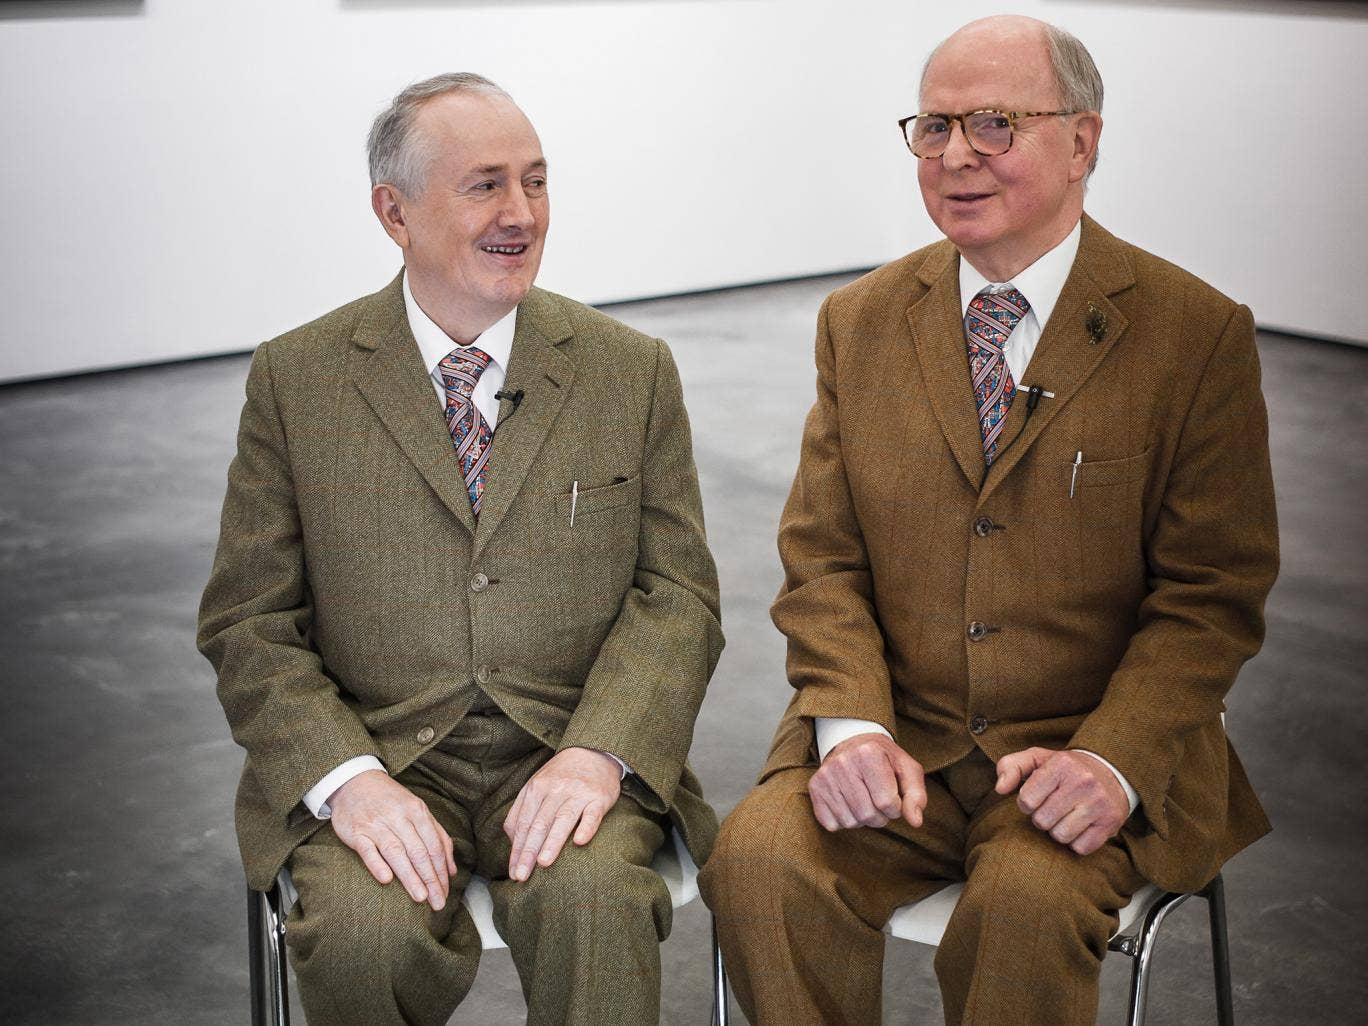 Gilbert And George: Gilbert And George: Artists Attempt To Shock With A Set Of